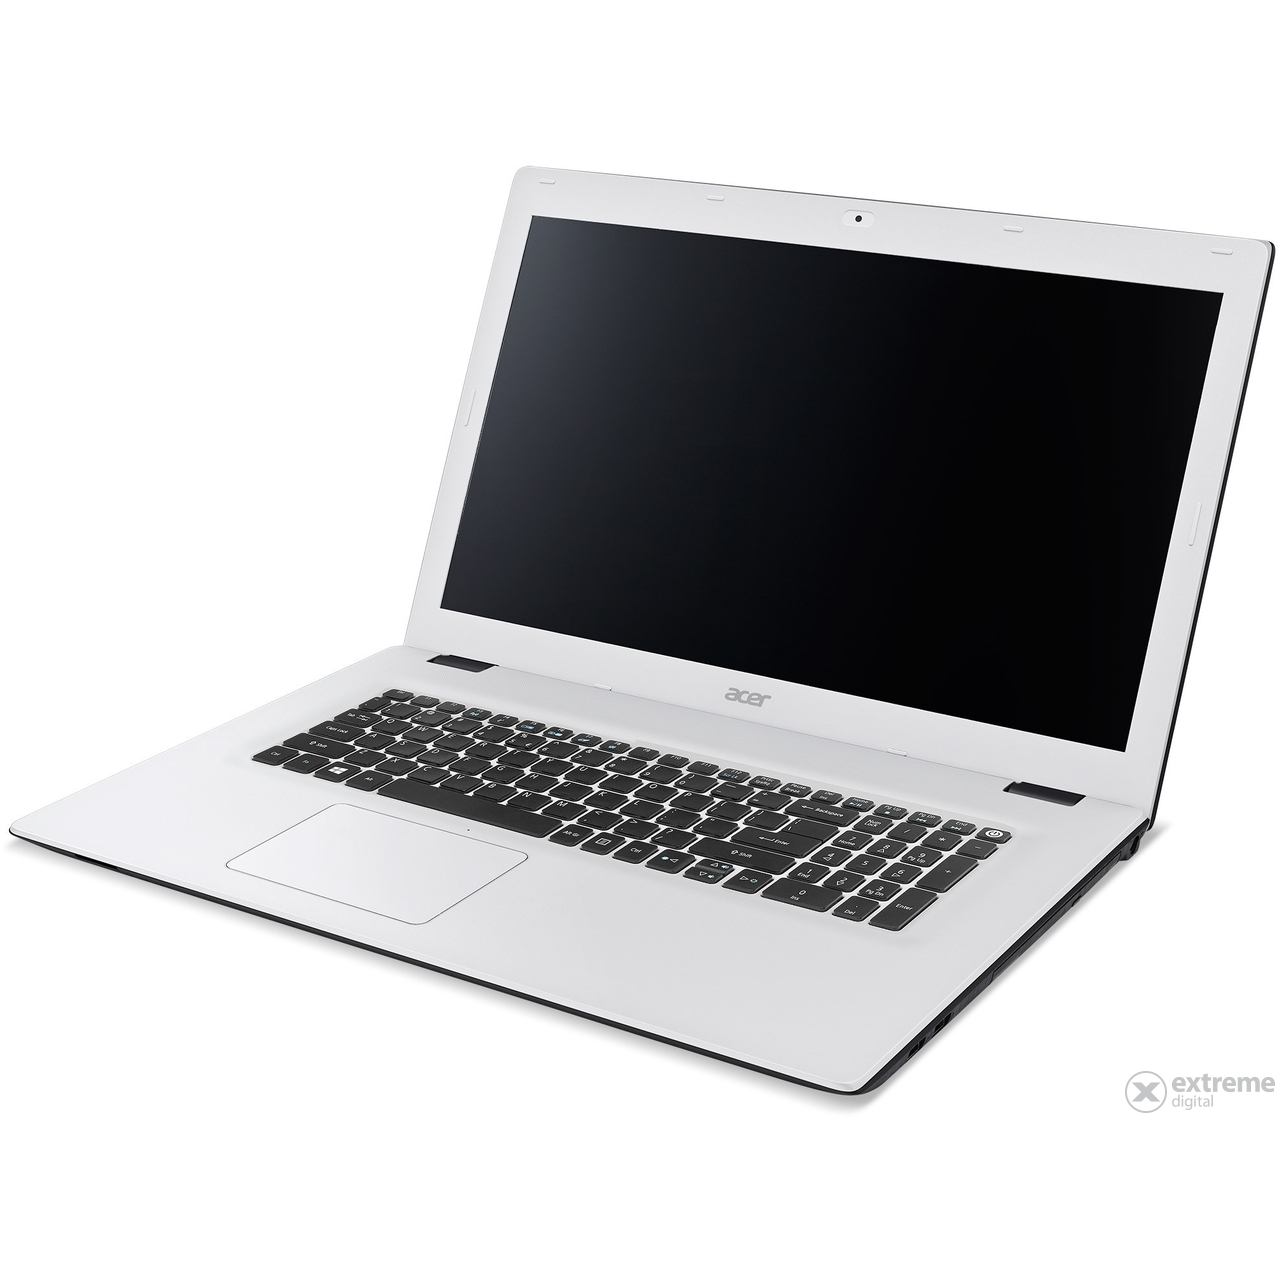 acer-aspire-e5-573-nx-mw2eu-021-notebook-windows-10-fekete-feher-microsoft-office-365-personal_abec1aba.jpg